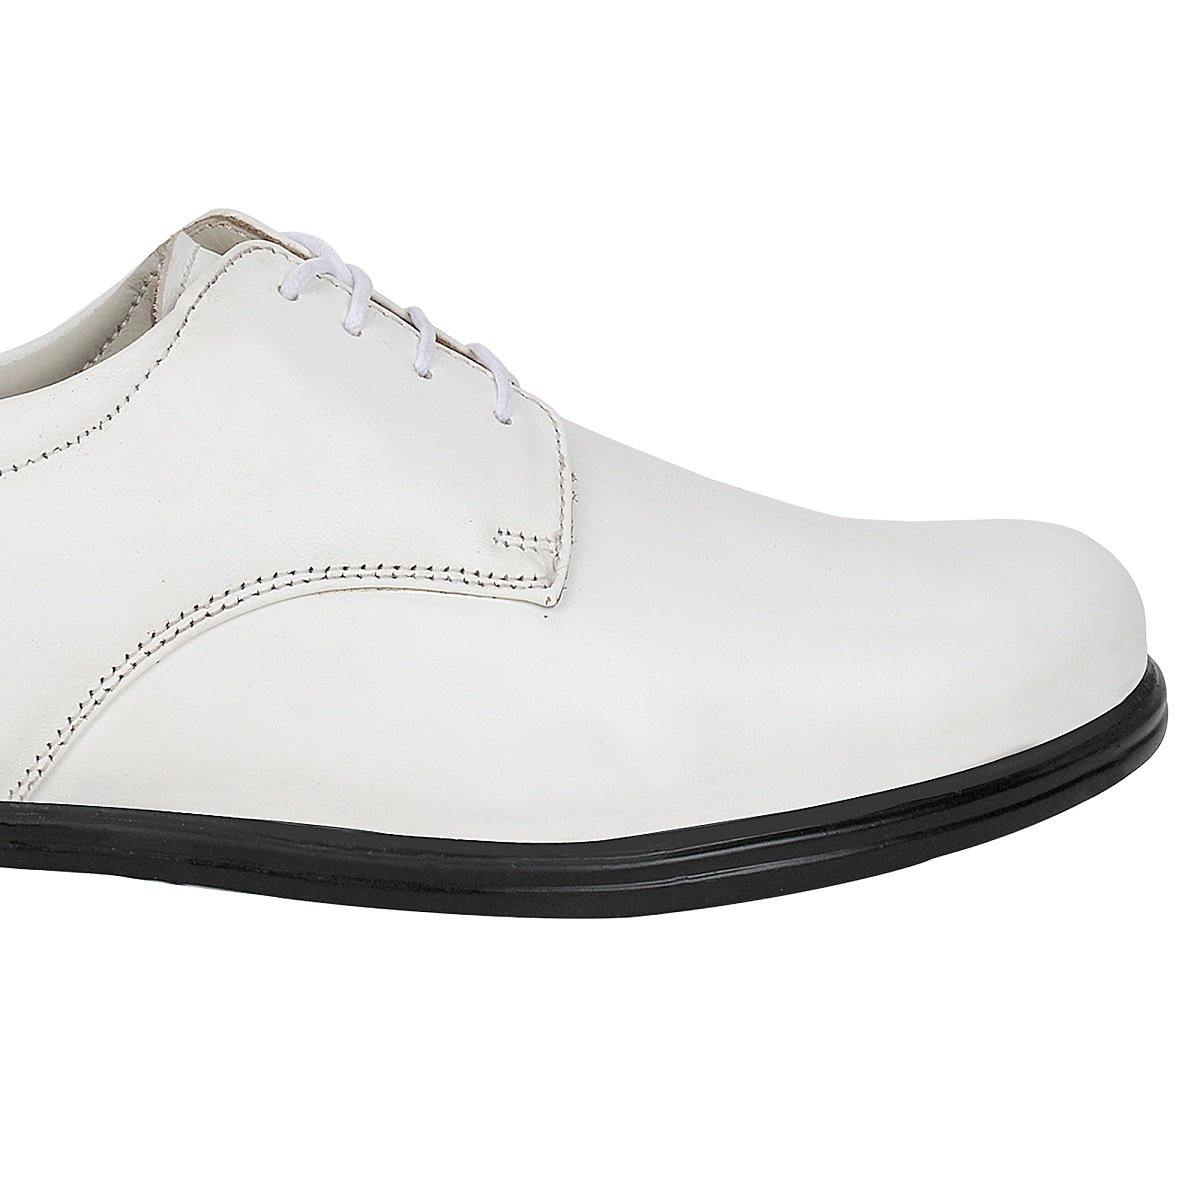 SeeandWear Navy Uniform Shoes